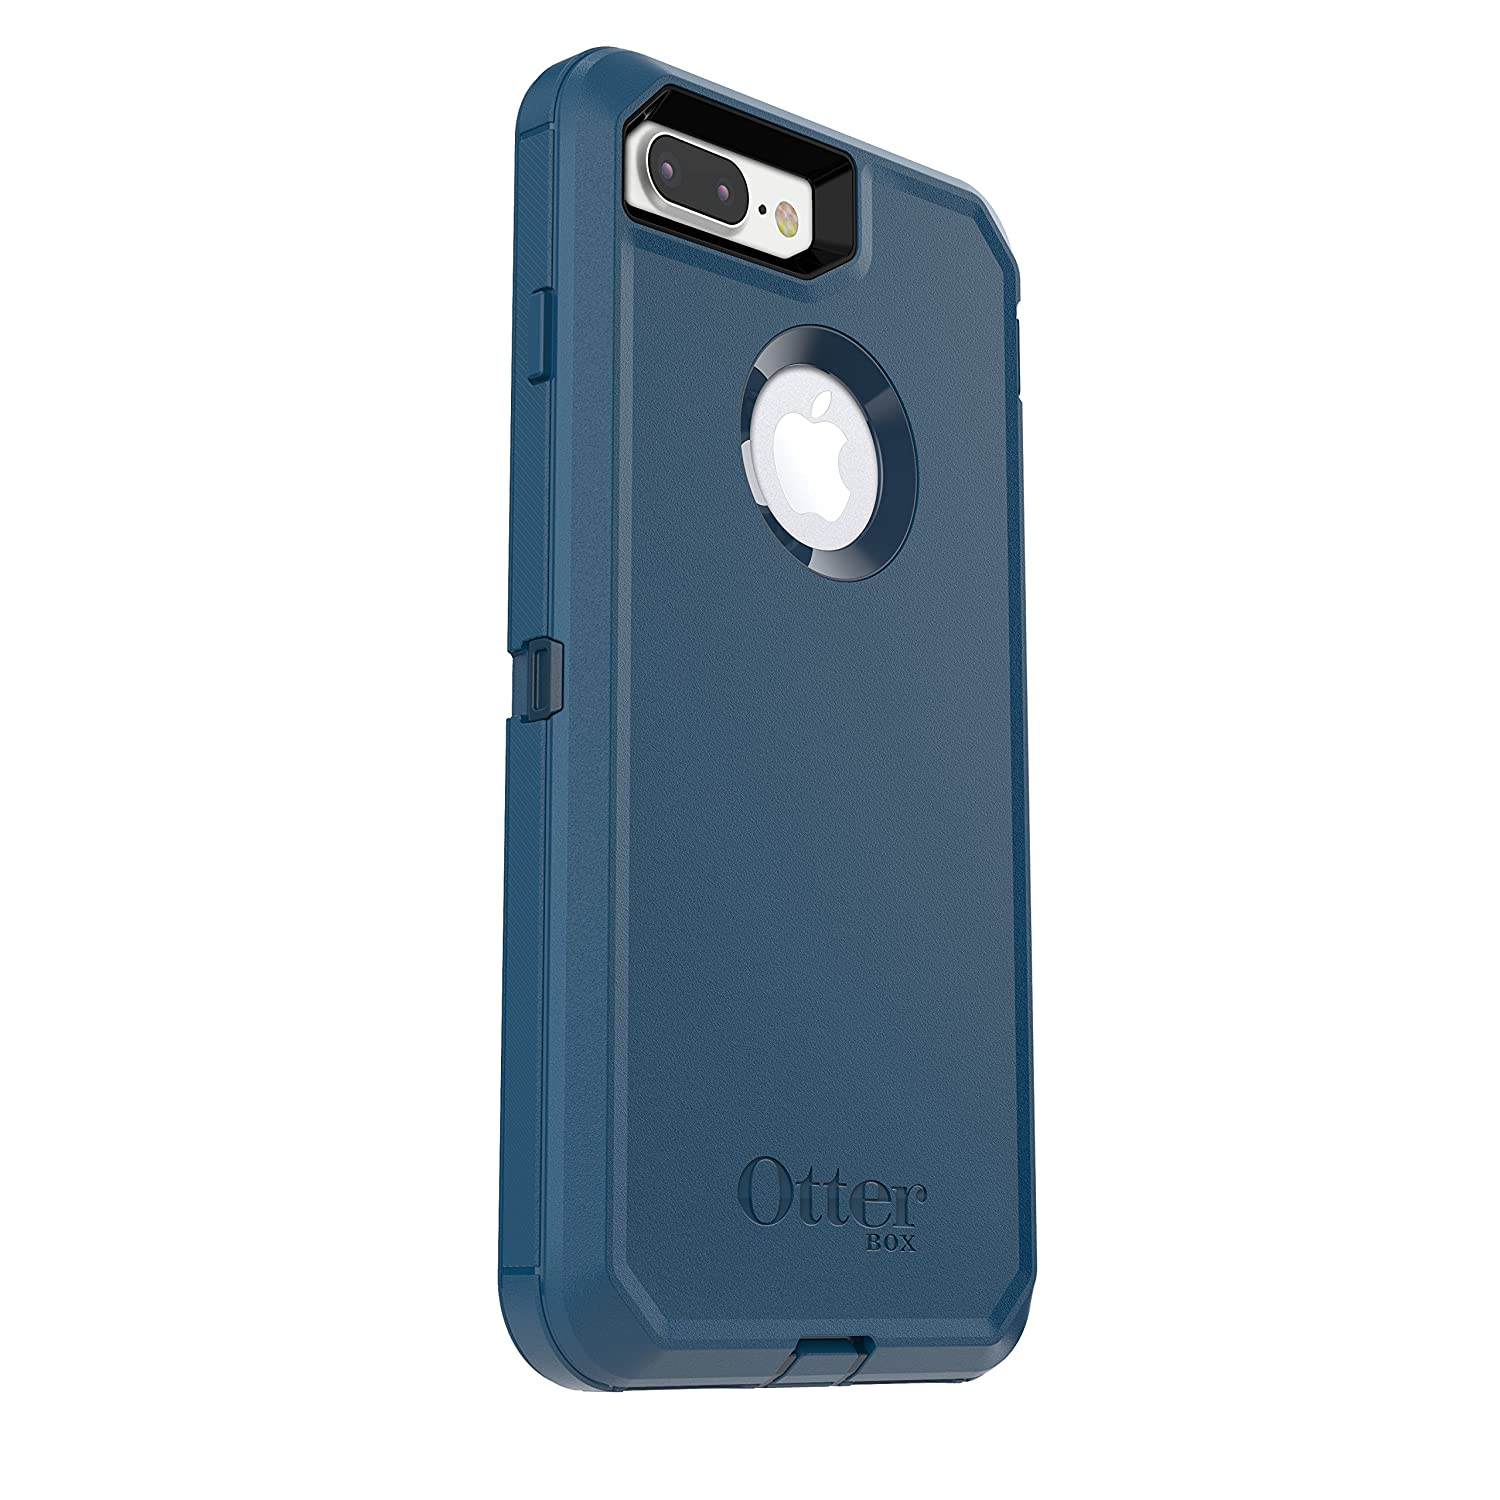 Amazon.com  OtterBox DEFENDER SERIES Case for iPhone 8 Plus   iPhone 7 Plus  (ONLY) - Retail Packaging - BESPOKE WAY (BLAZER BLUE STORMY SEAS BLUE)   Cell ... 622c42f9e89c